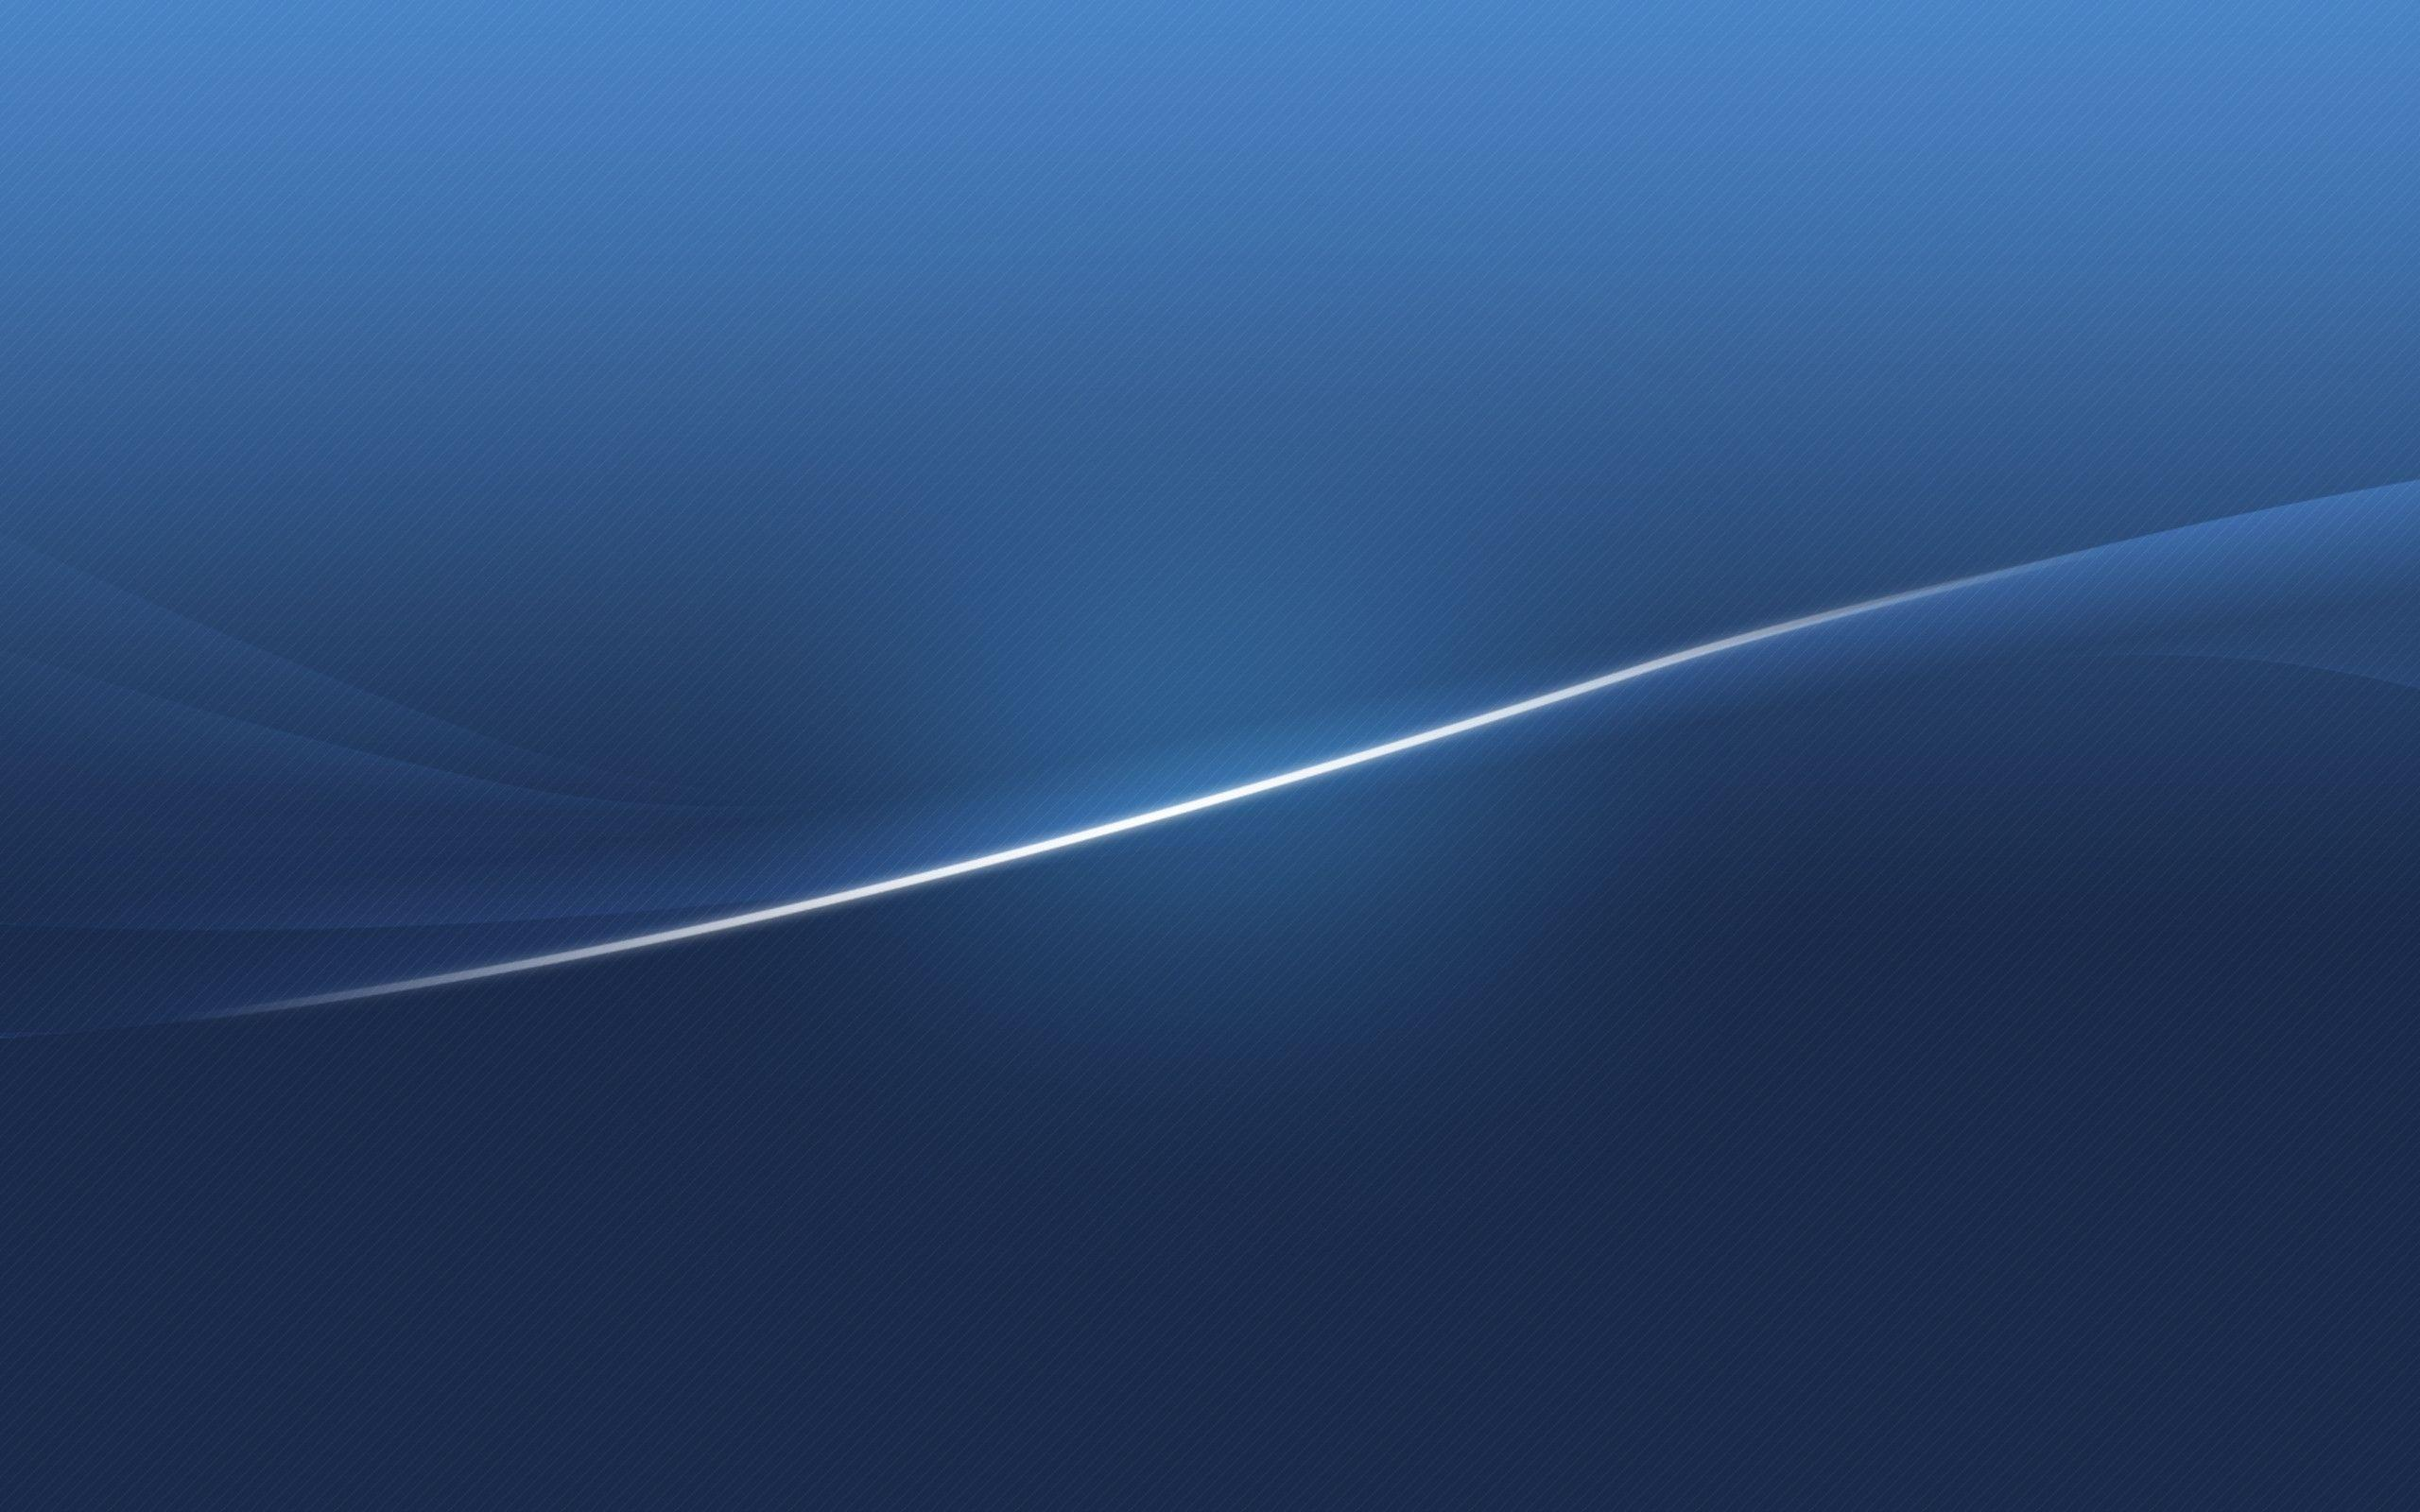 solid light blue wallpaper hd - photo #31